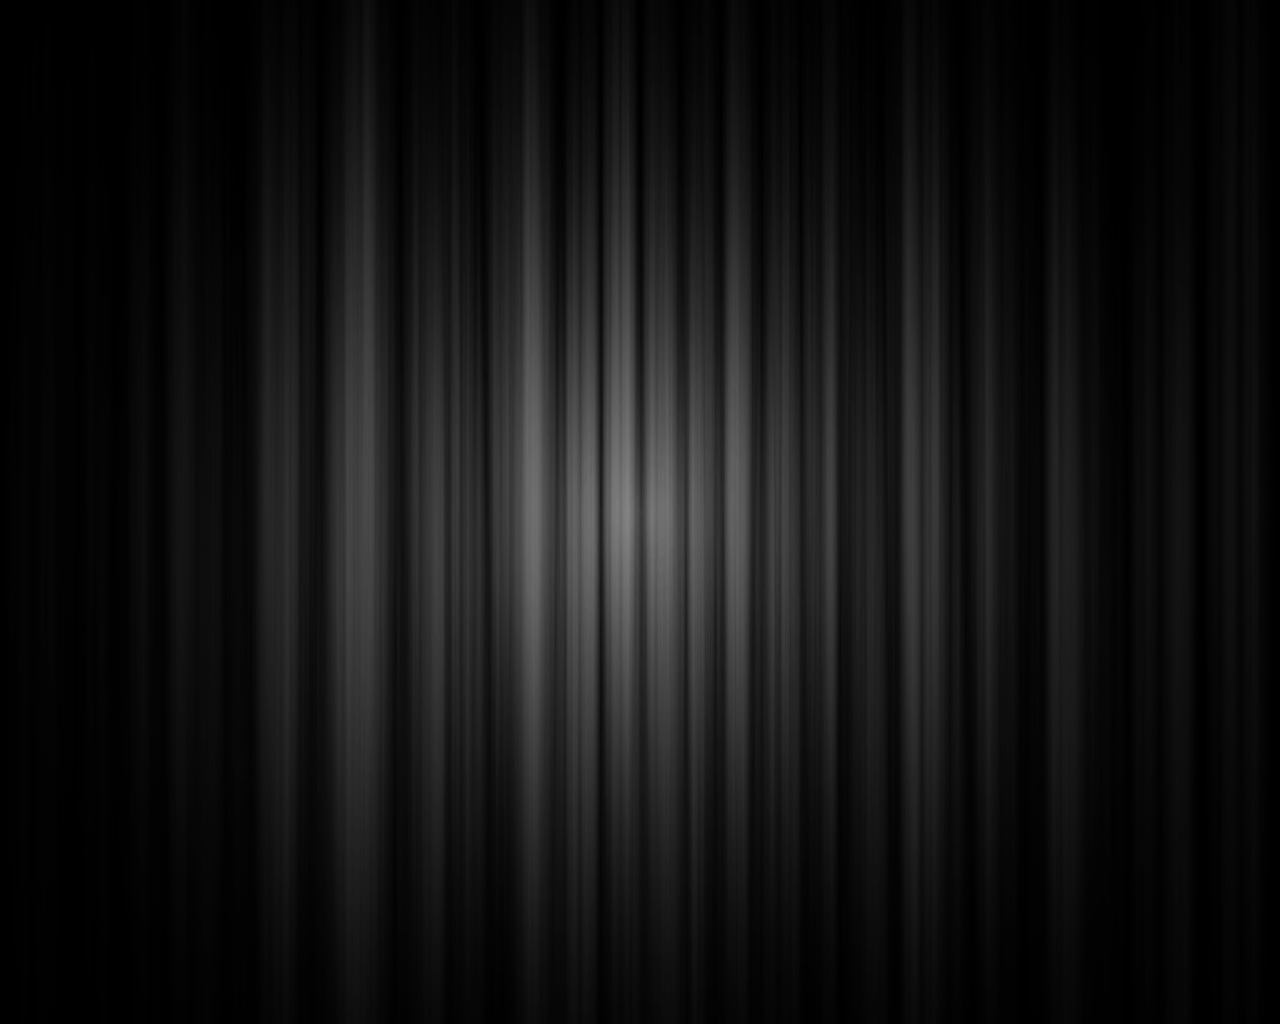 Free Download Grey Abstract Hd Wallpaper Background Image Grey